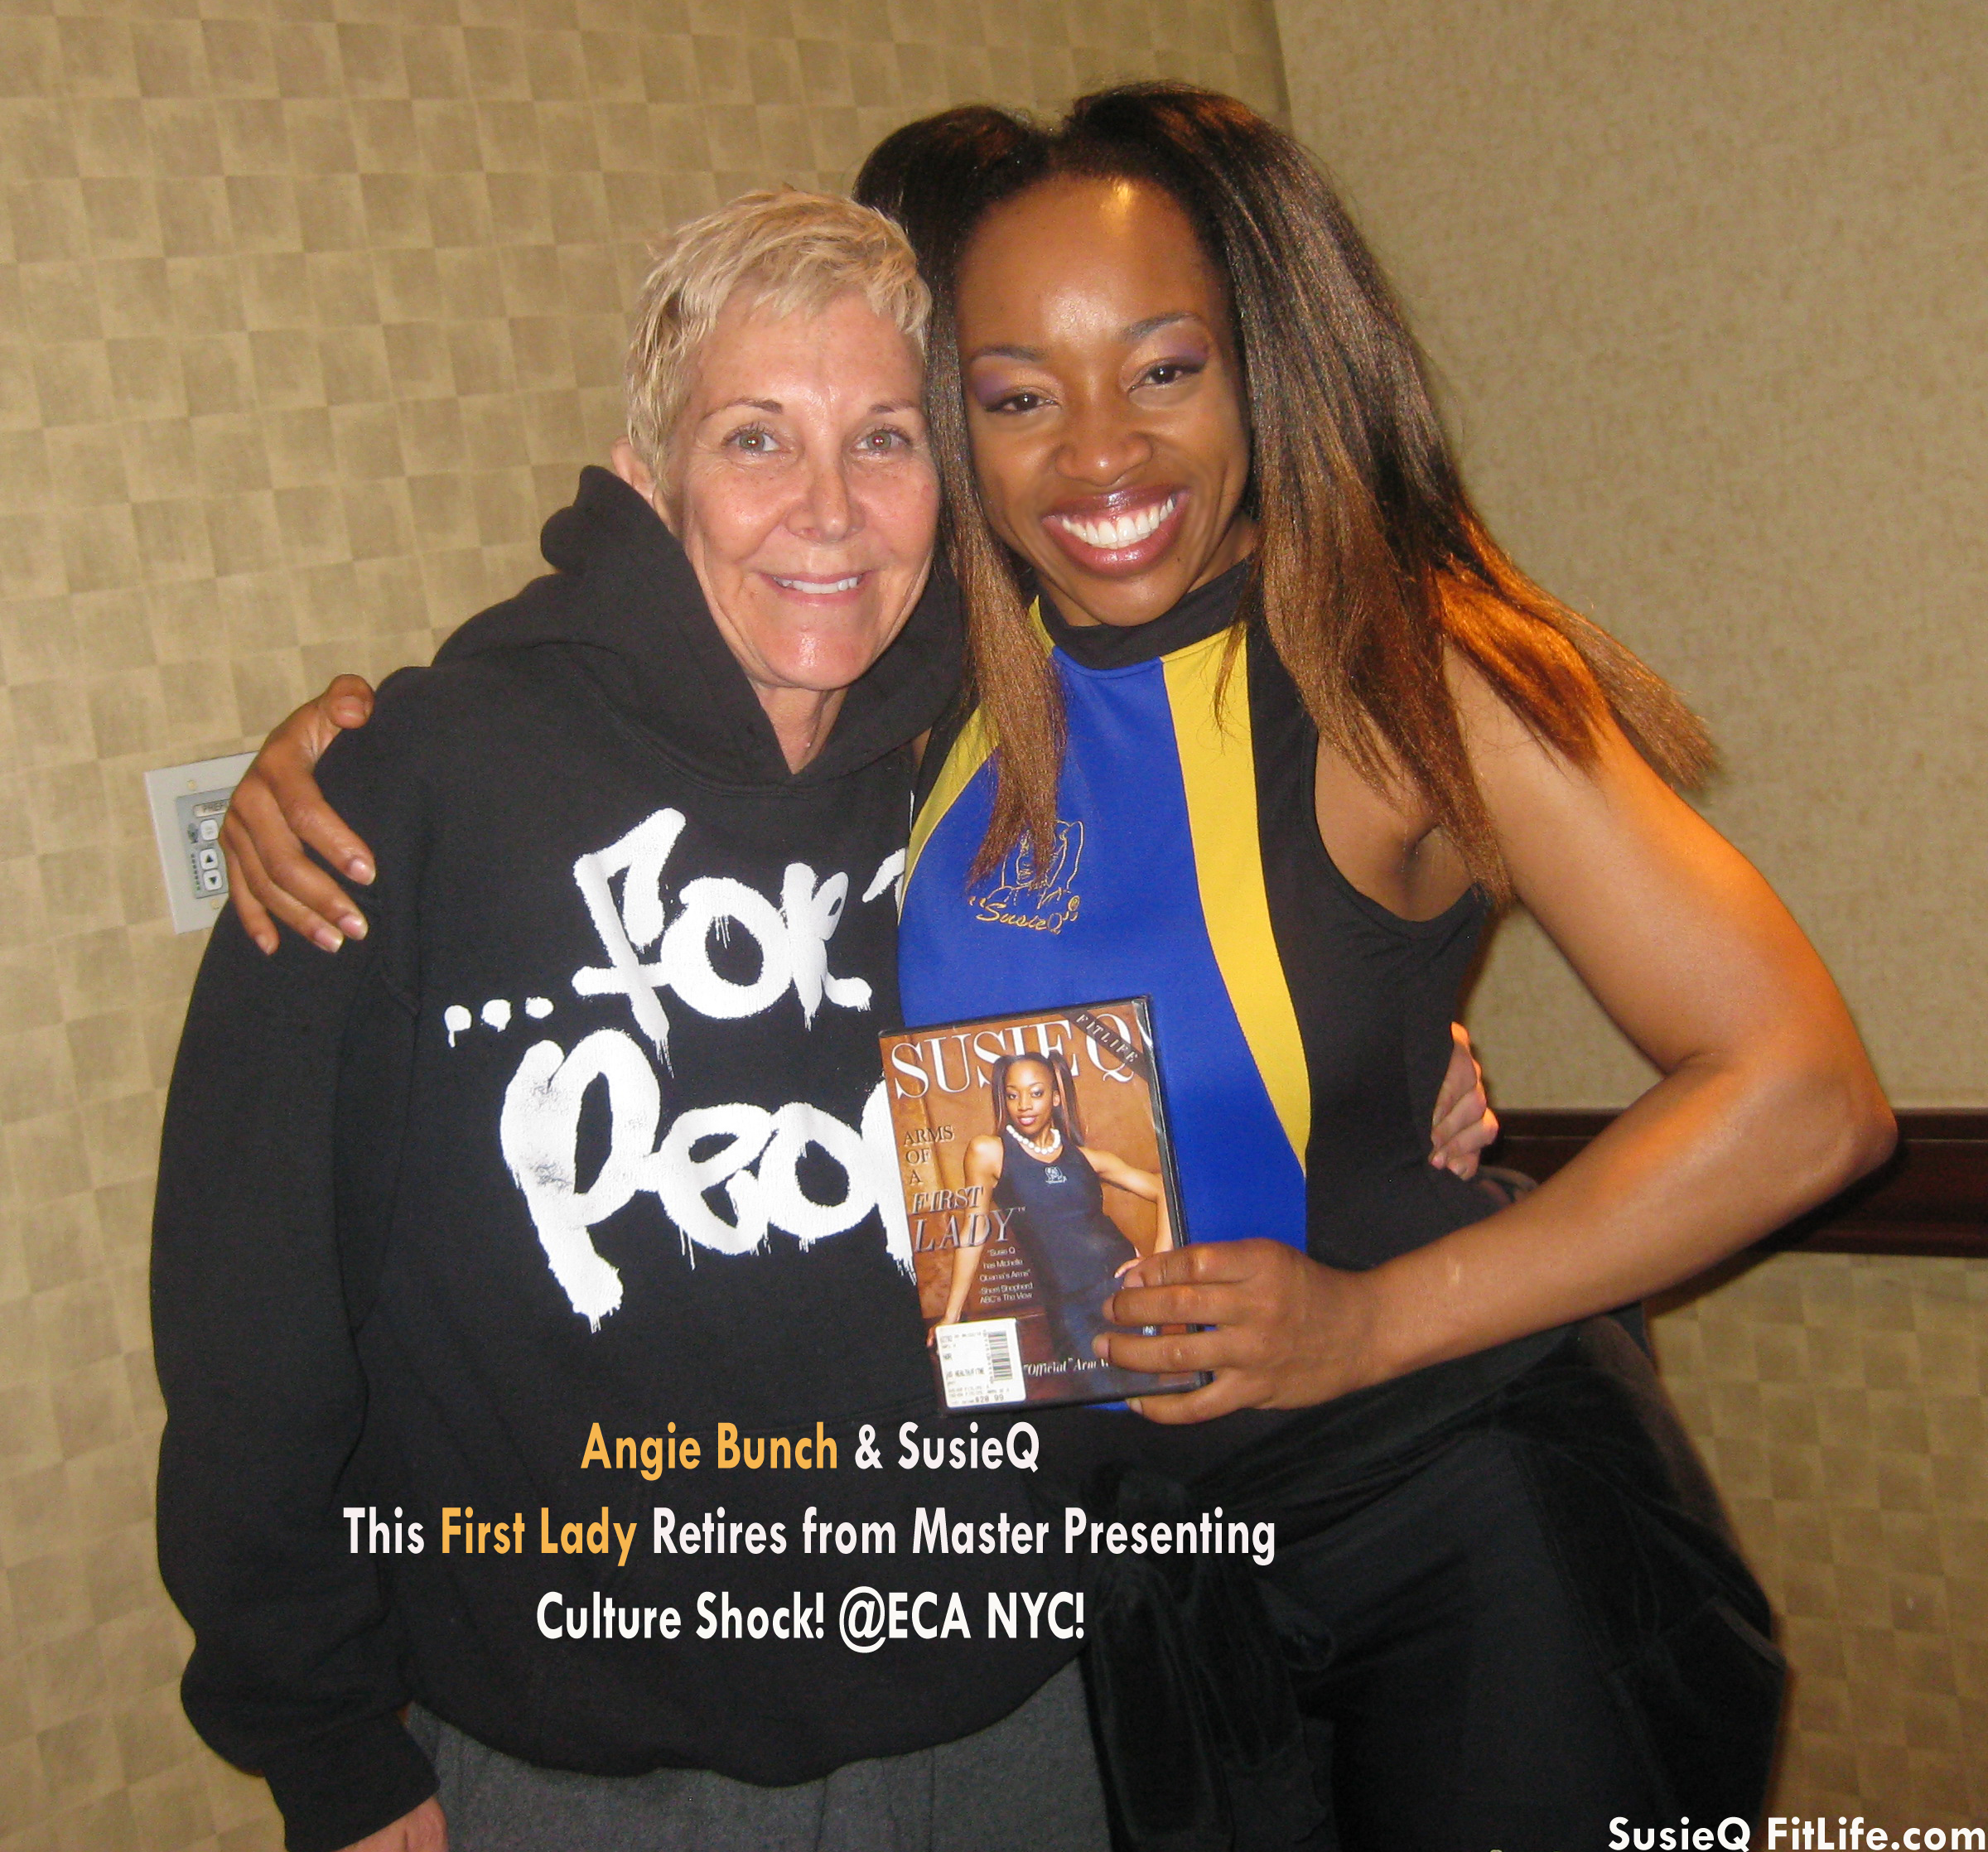 Angie Bunch Culture Shock & SusieQ FitLife! @ECA NYC!